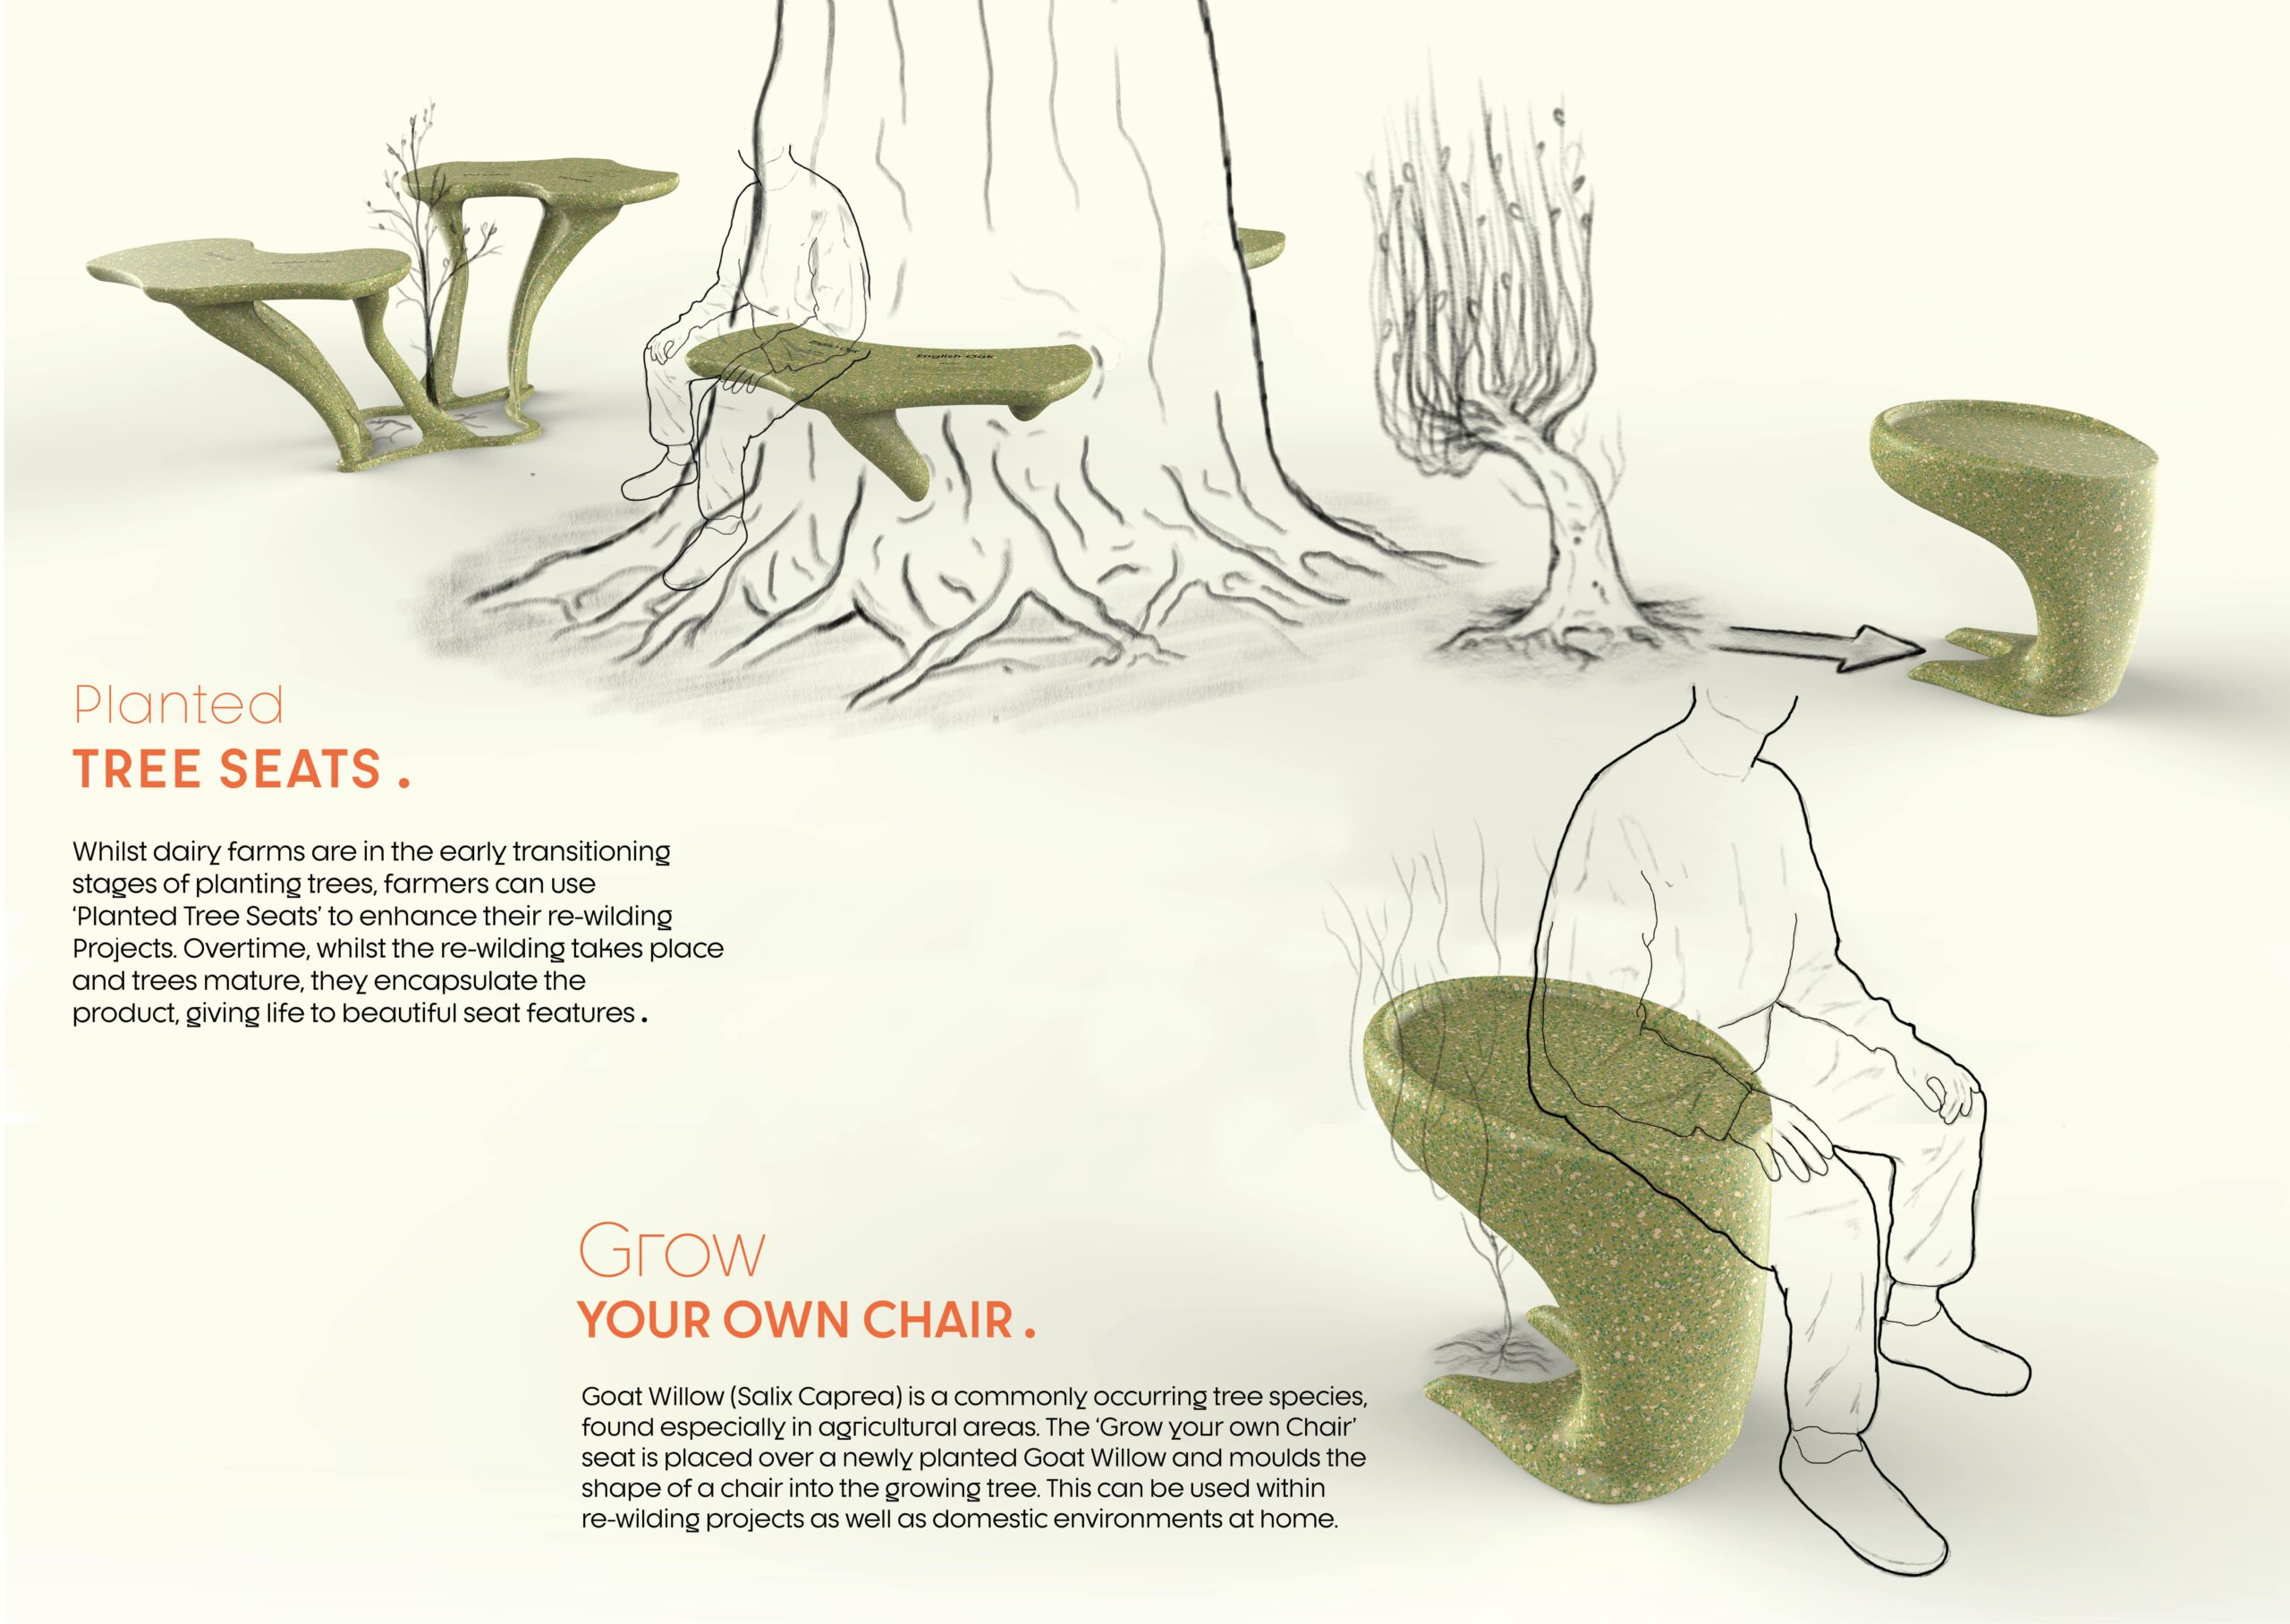 Benefits of the Tree Seat & Grow Your Own Chair